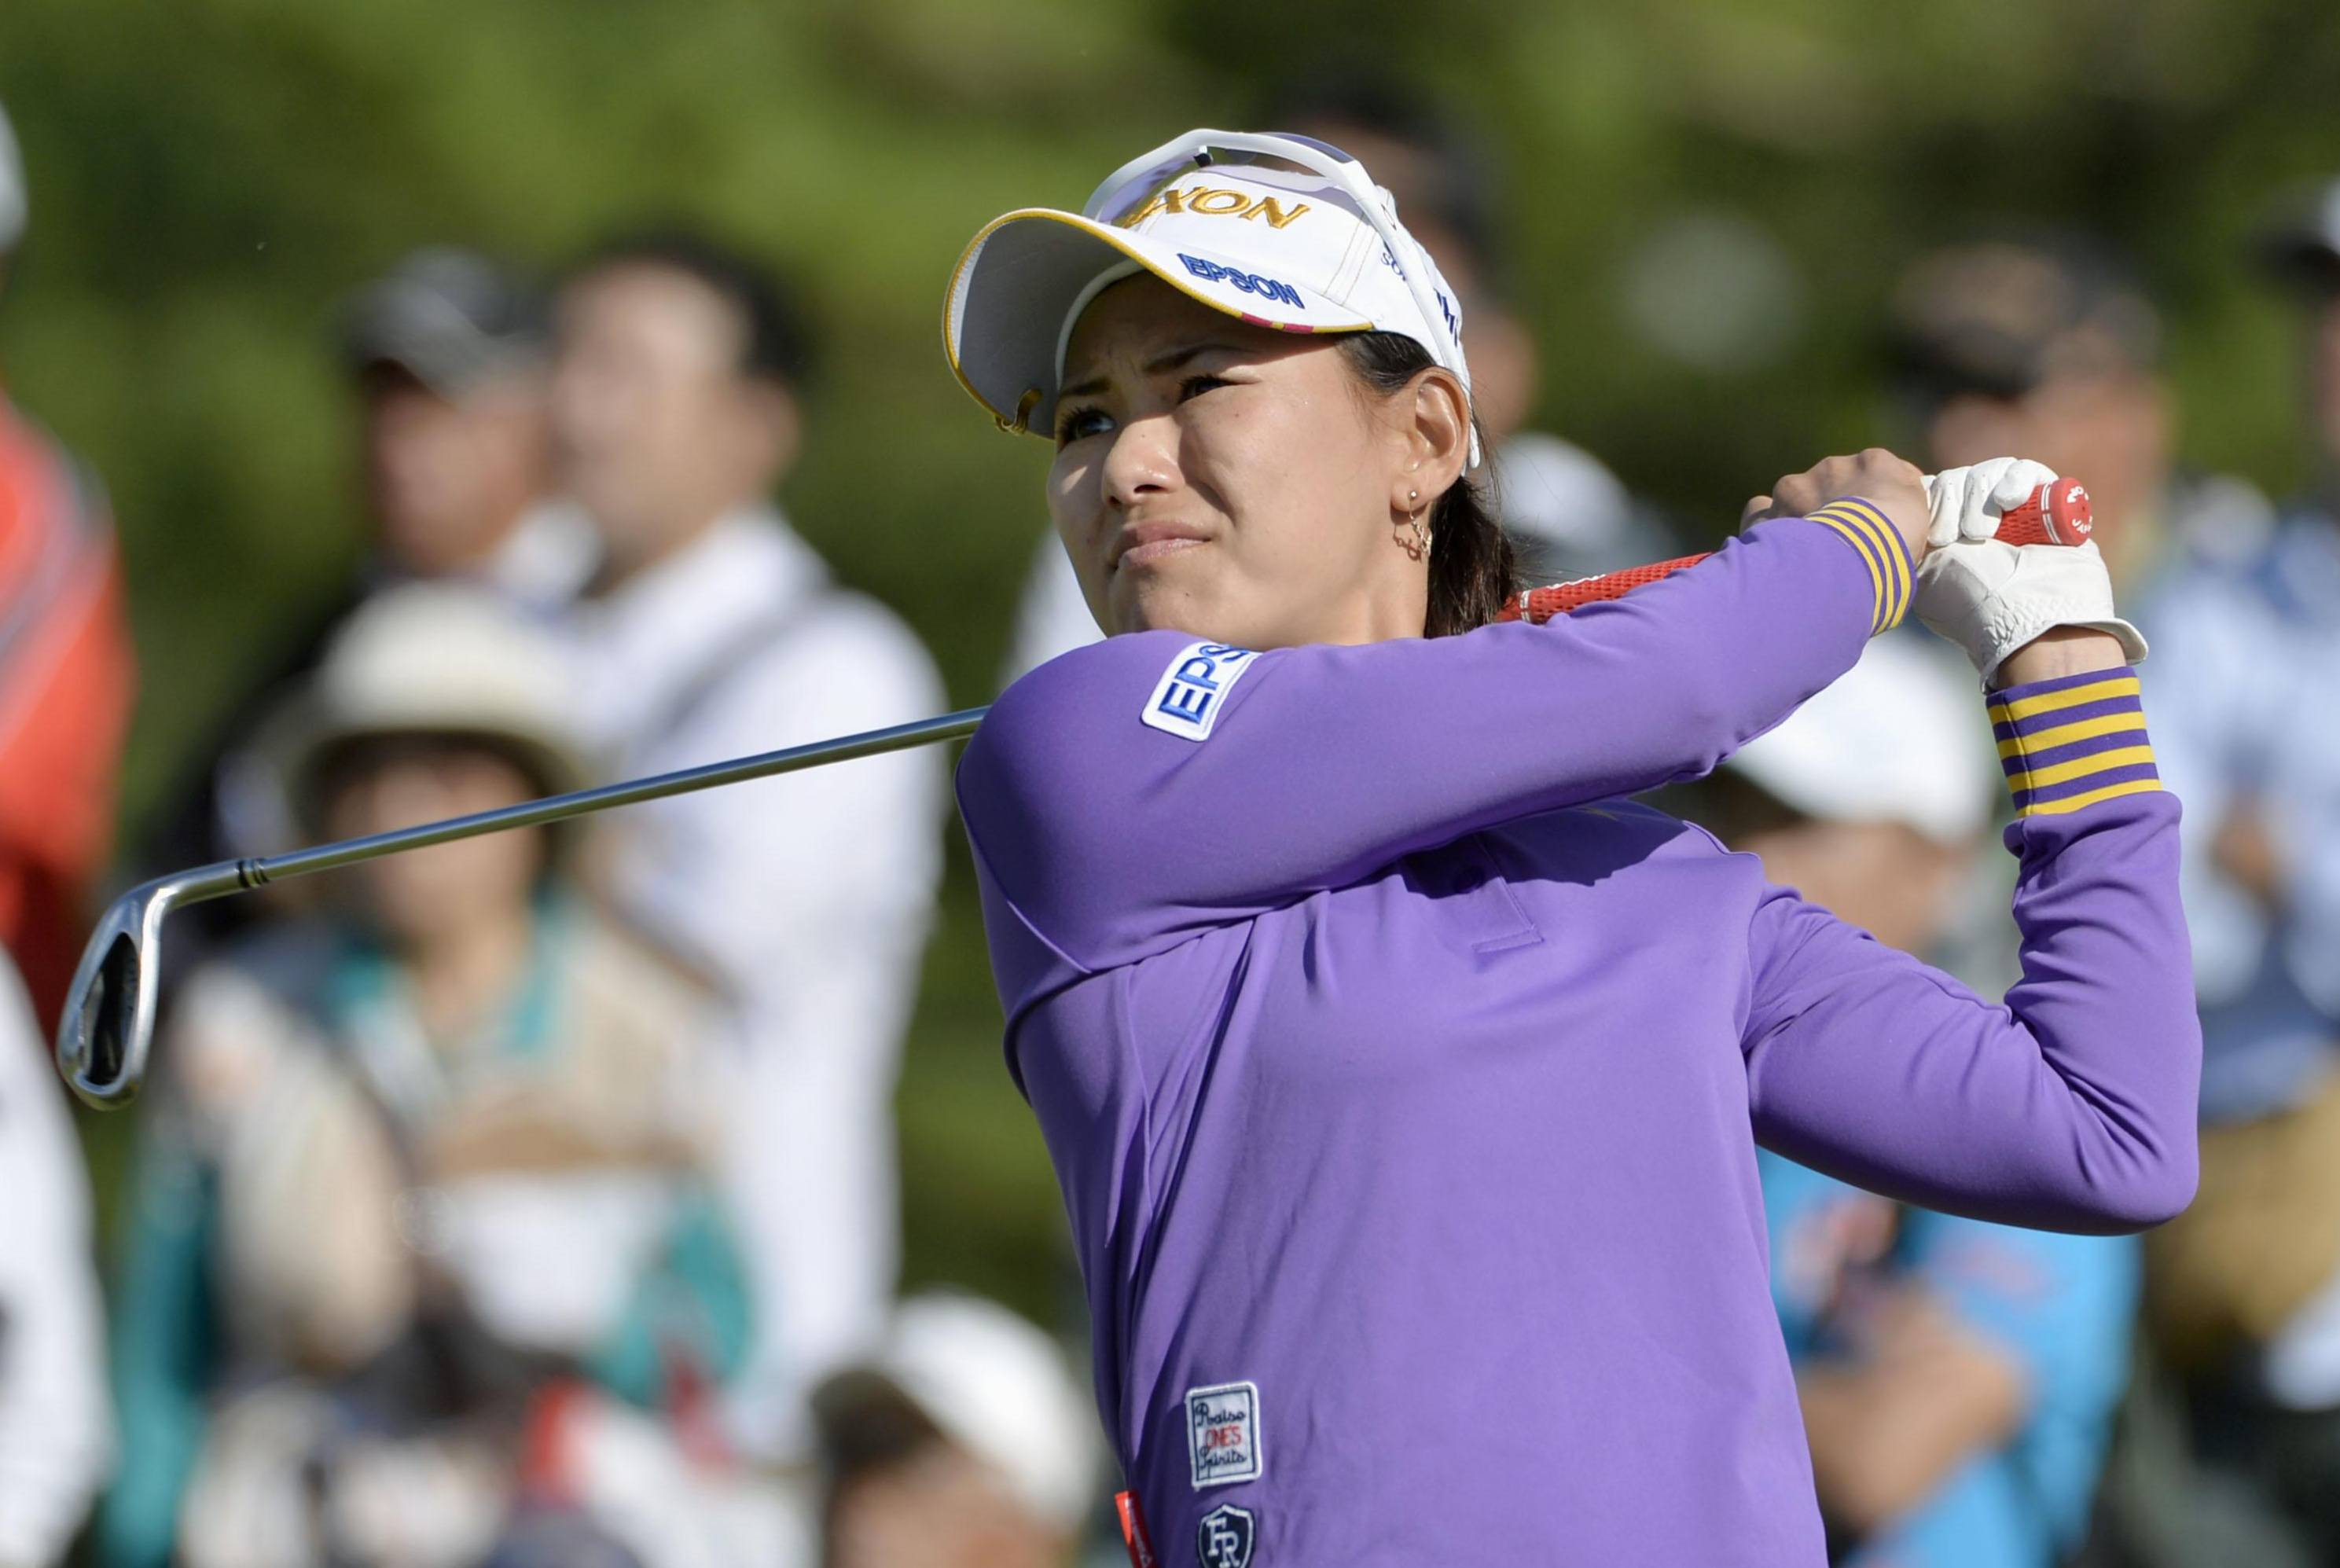 Miyazato tied for lead after first round of Miyagi TV Cup